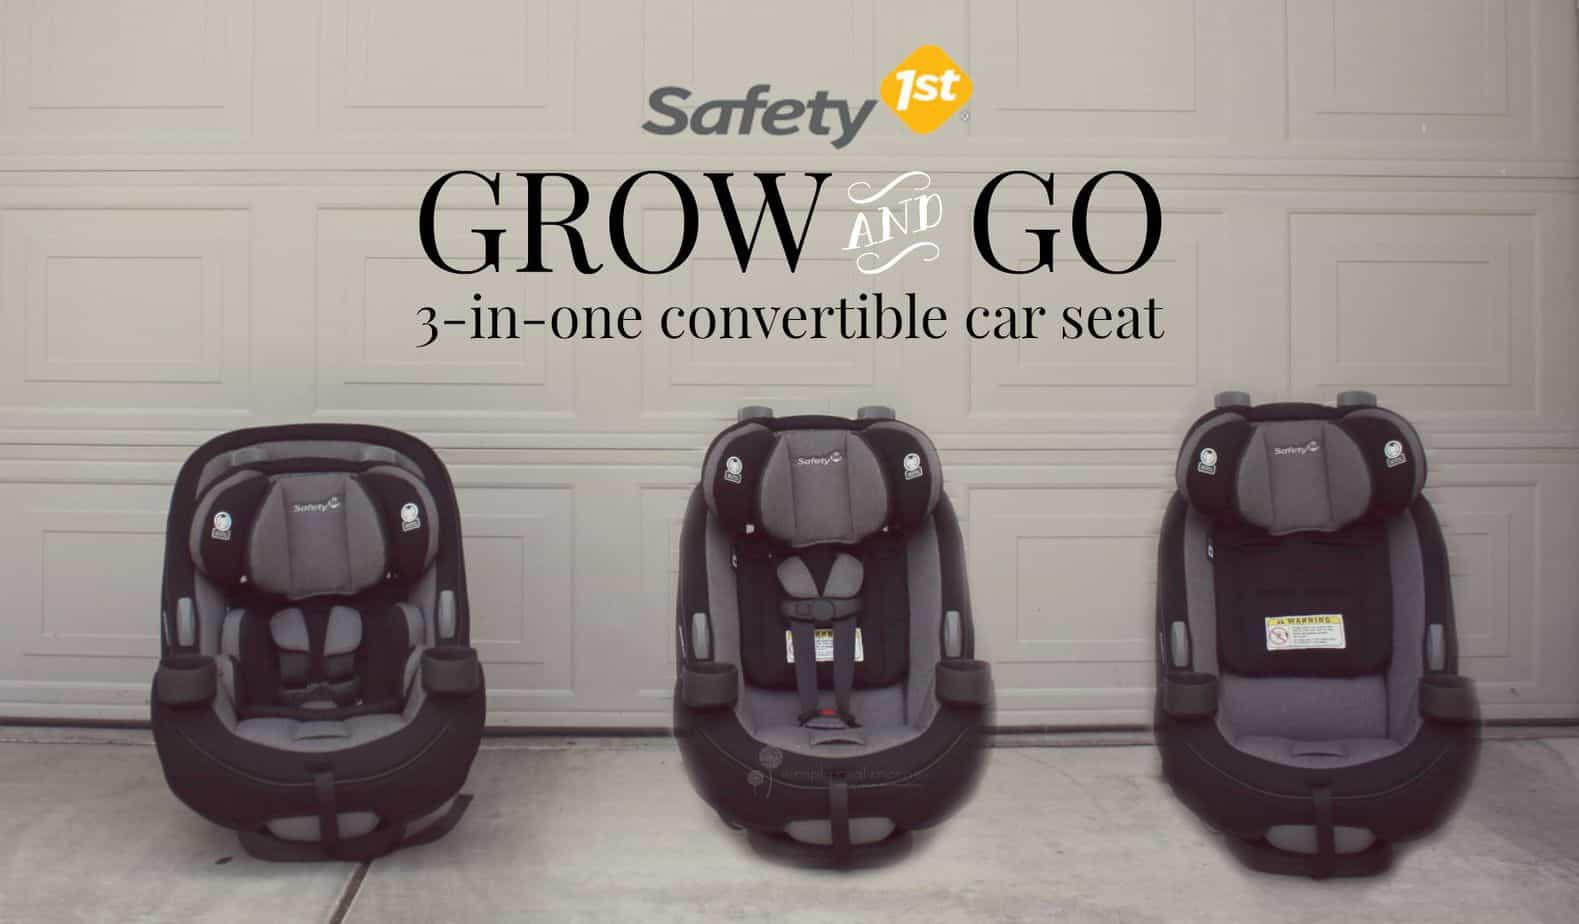 Travel Safety Tips With Safety 1st's New Grow And Go Car Seat 3